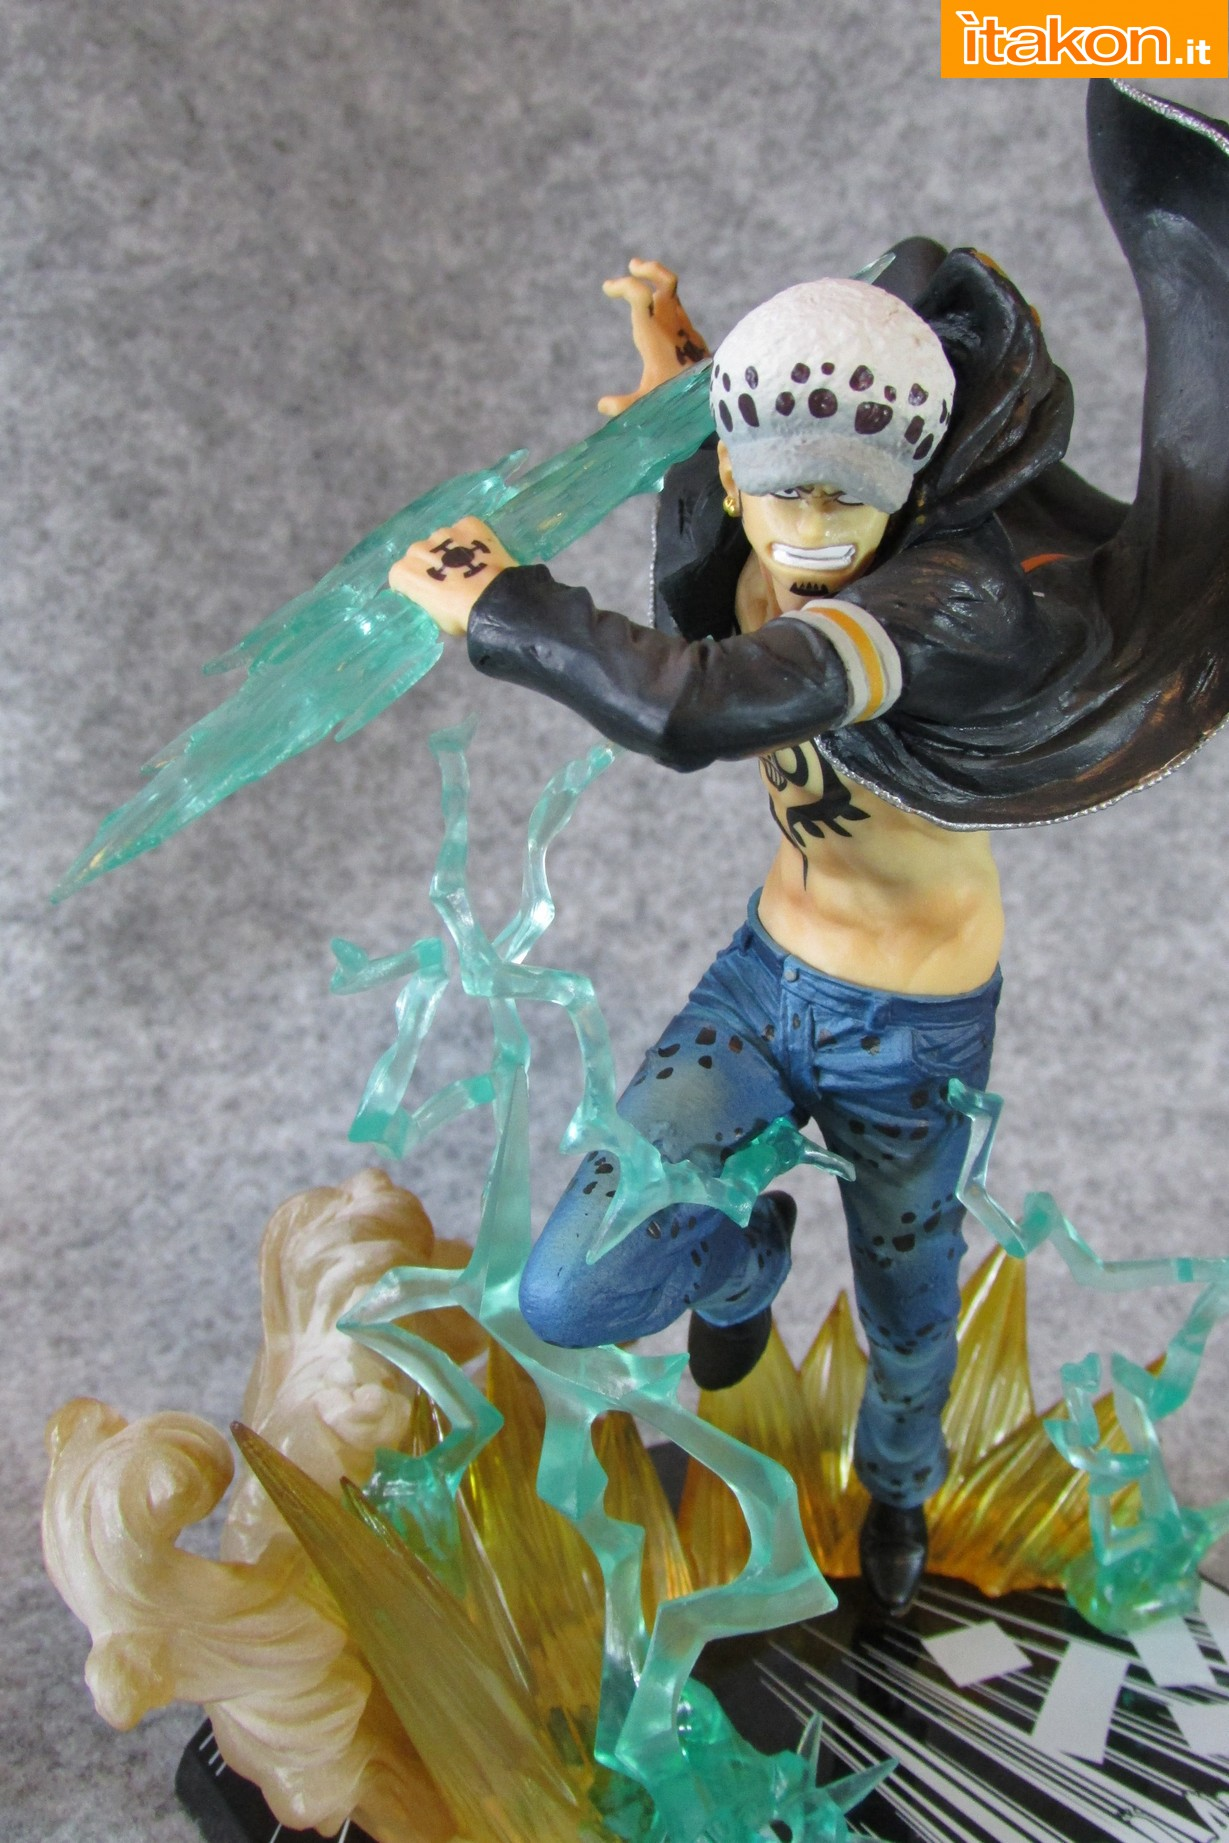 Link a One Piece Trafalgar Law Gamma Knife Figuarts ZERO Chou Gekisen Extra Battle Recensione Review Itakon.it 19